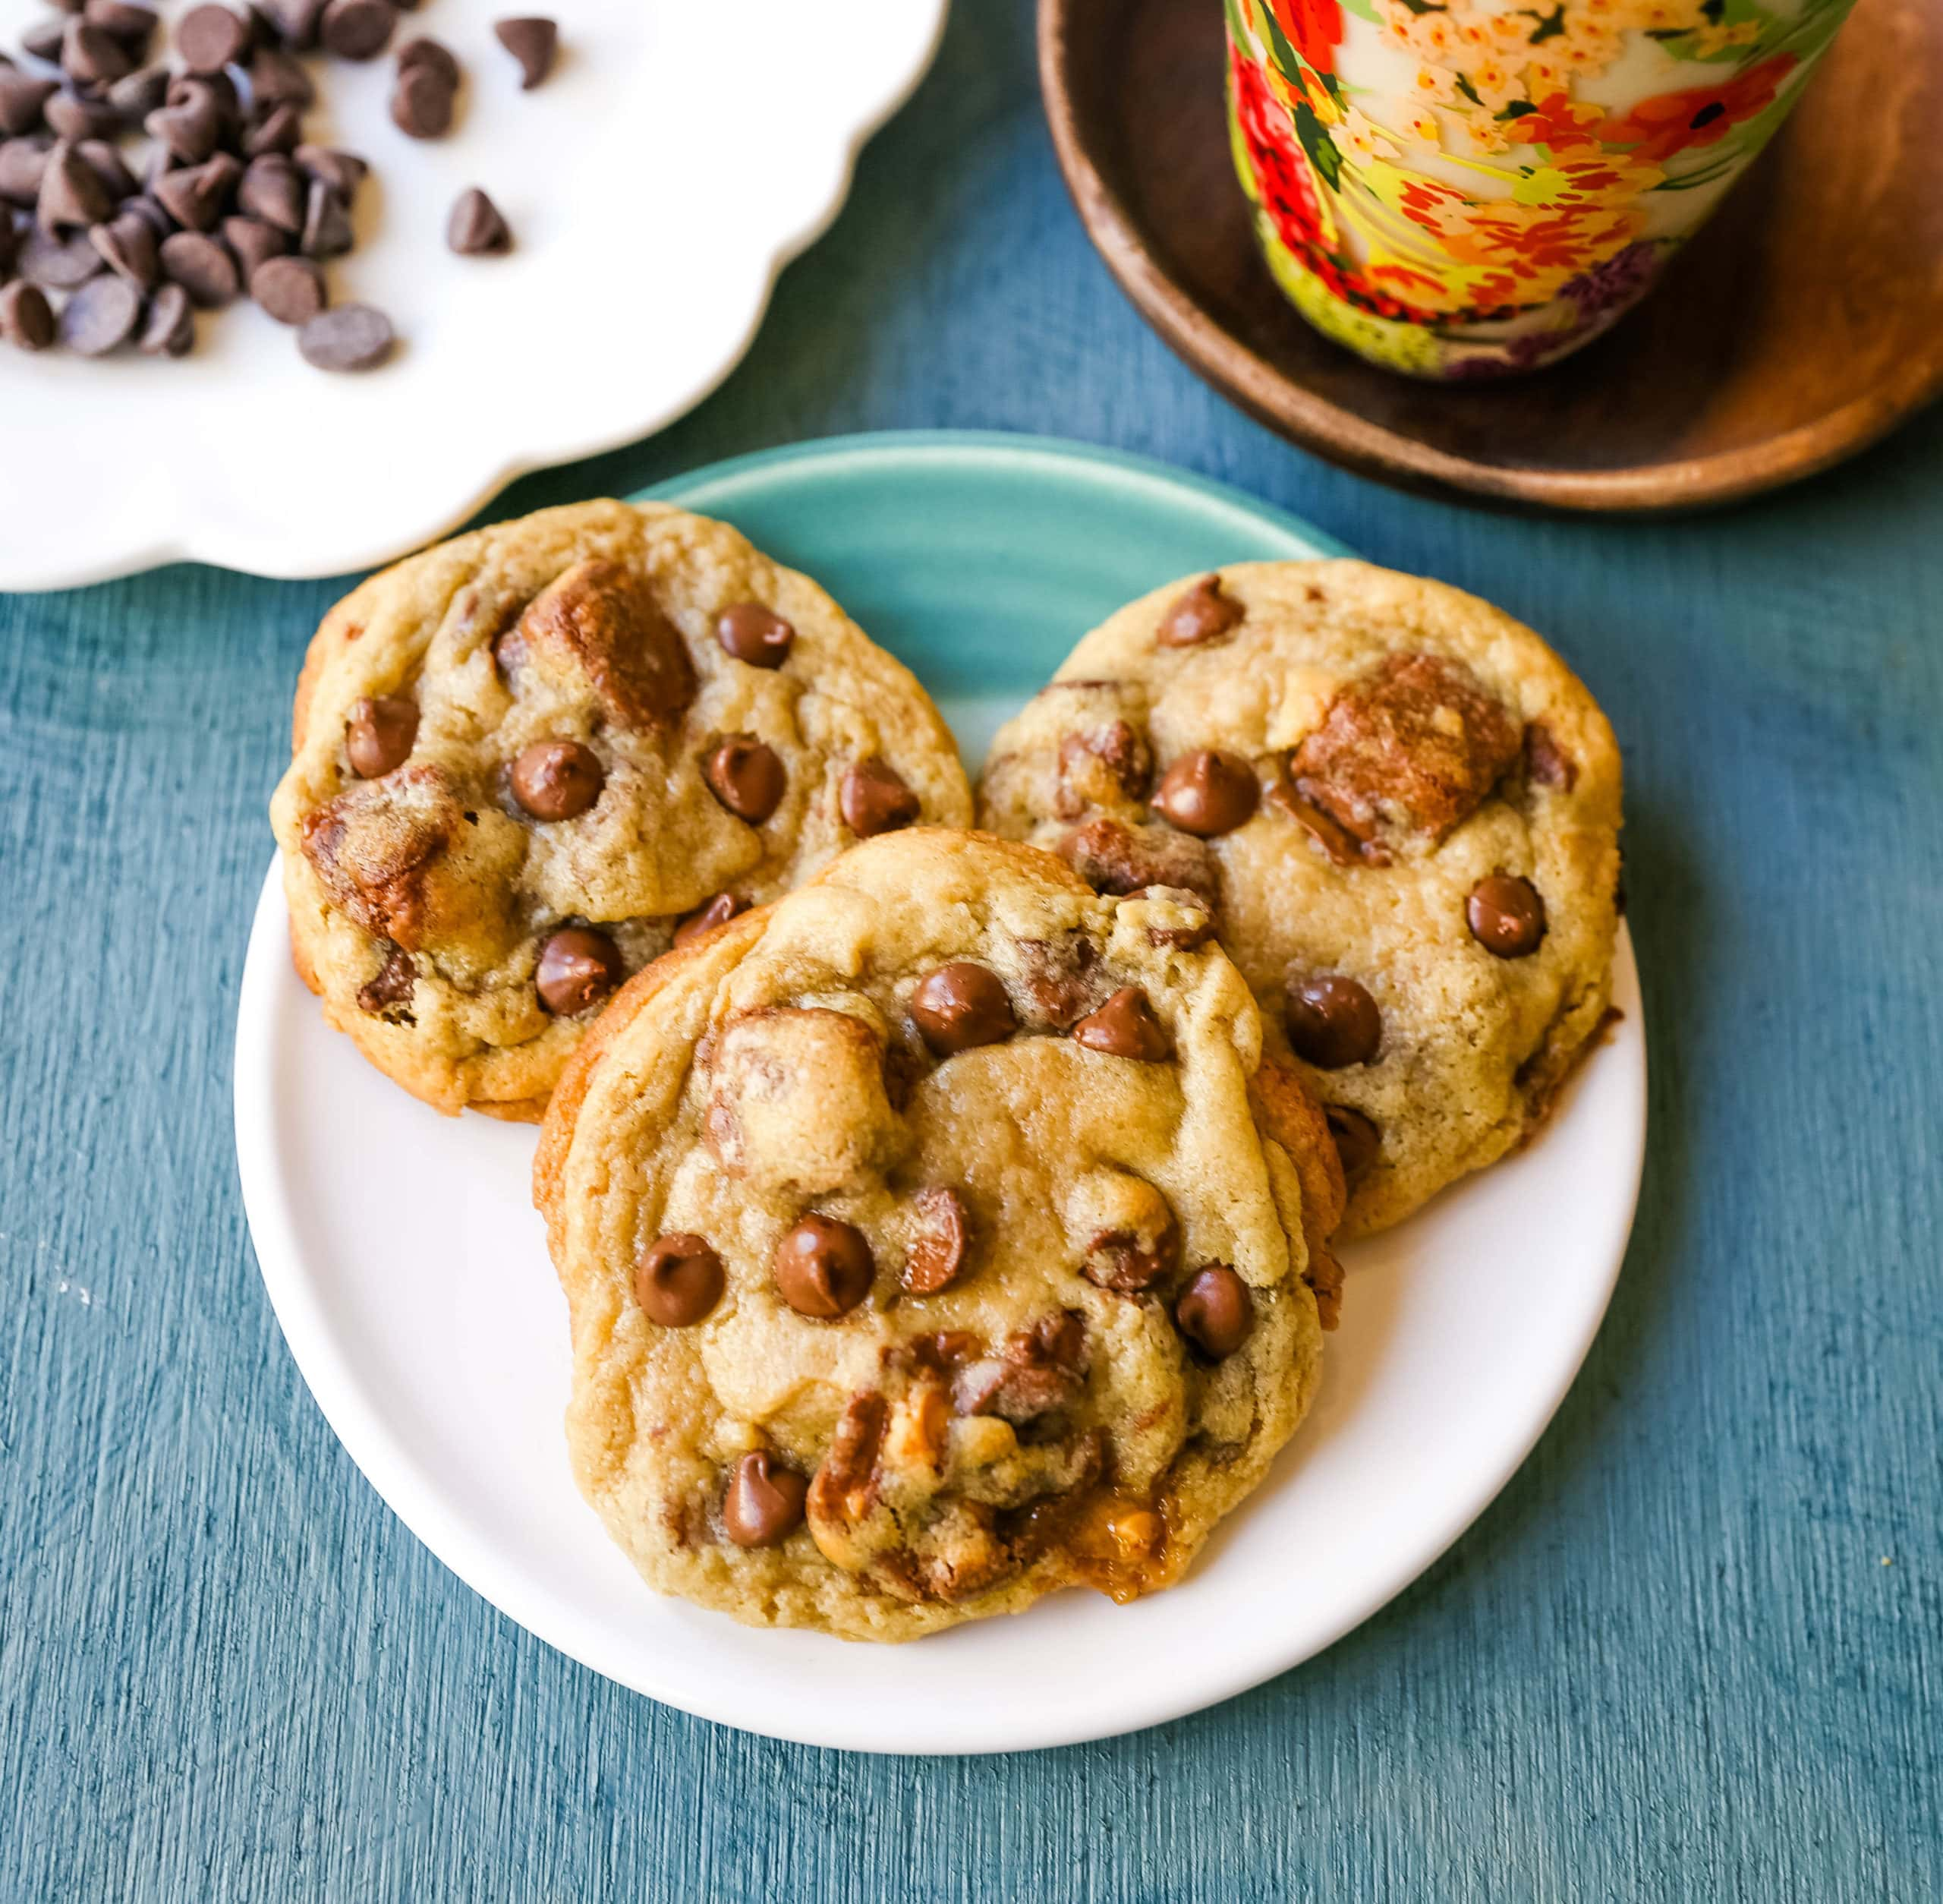 Snickers Chocolate Chip Cookies Soft, chewy chocolate chip cookies with Snickers candy bars baked in them. The perfect chocolate chip Snickers caramel bar cookies!